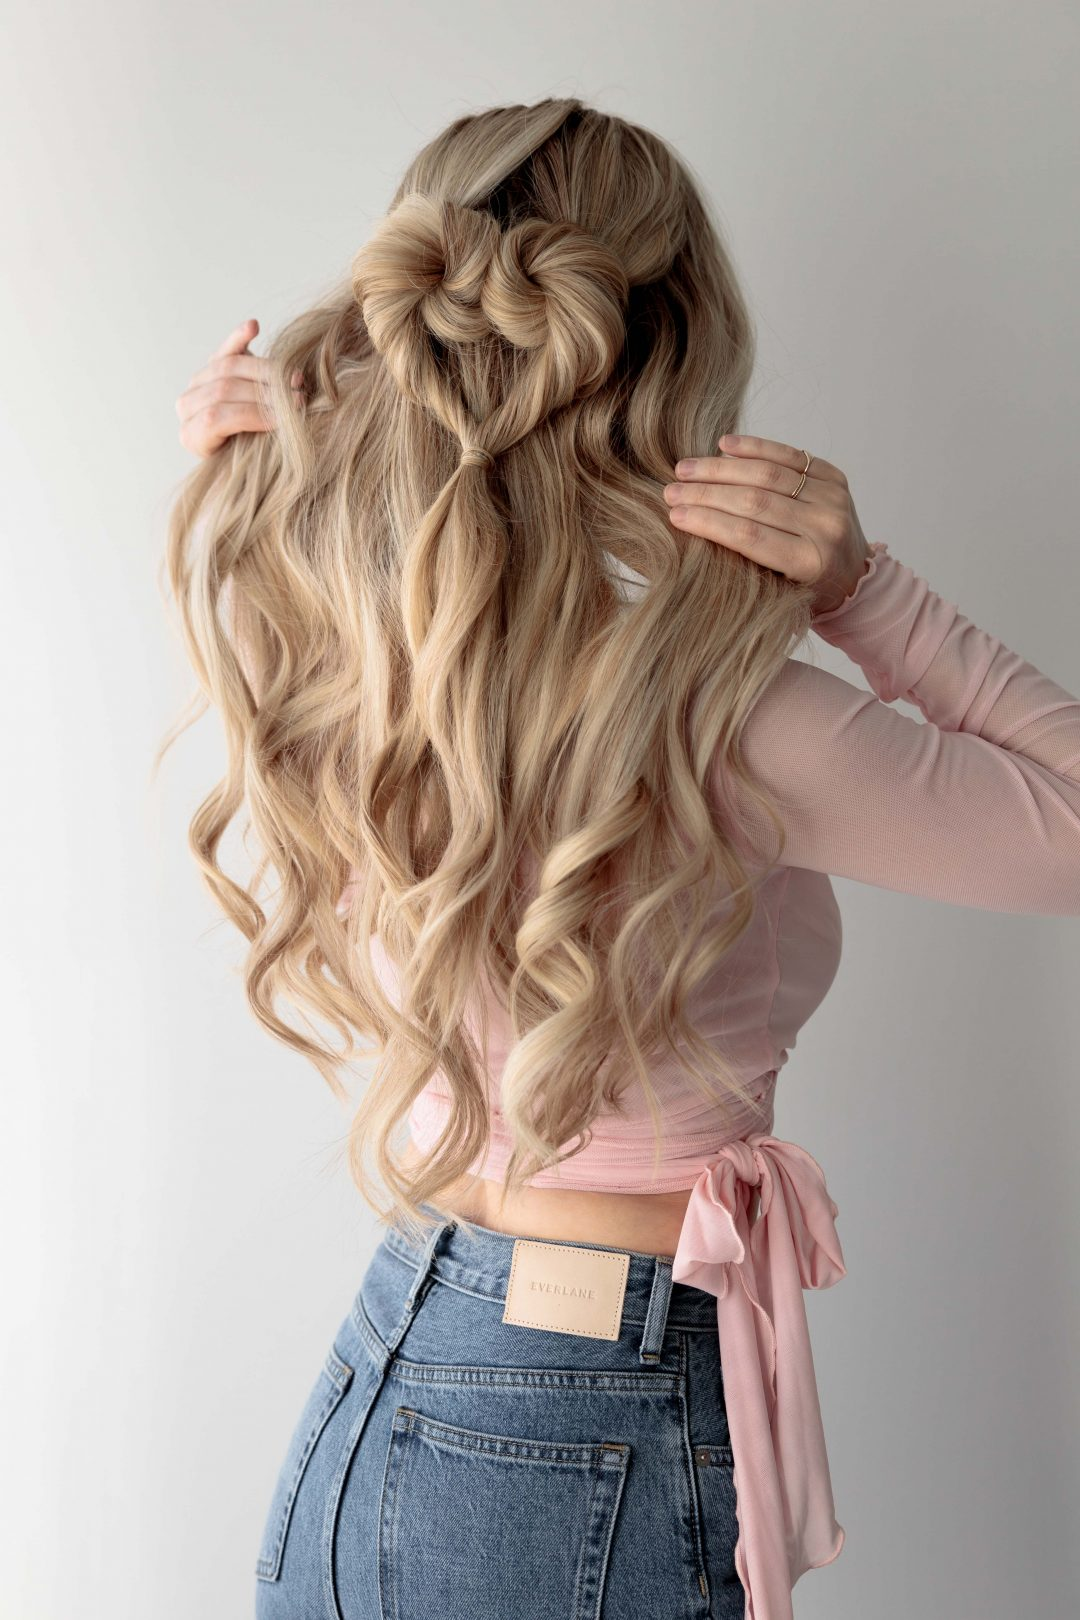 3 EASY VALENTINE'S DAY HAIRSTYLES - Alex Gaboury